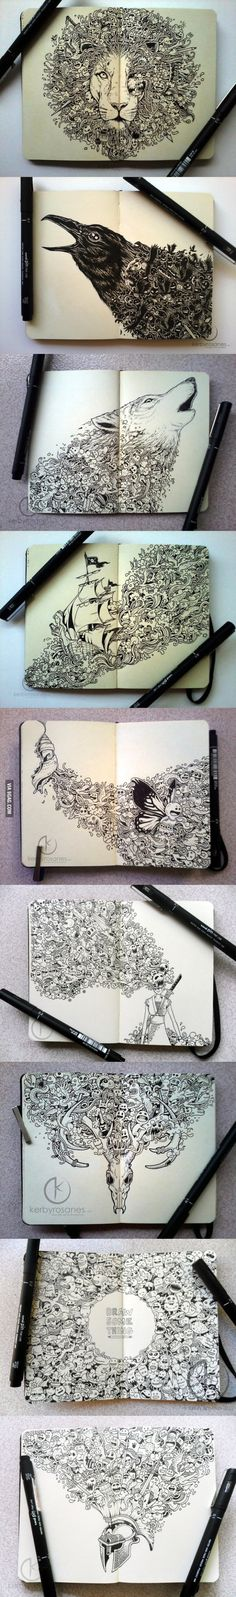 Incredible  drawings